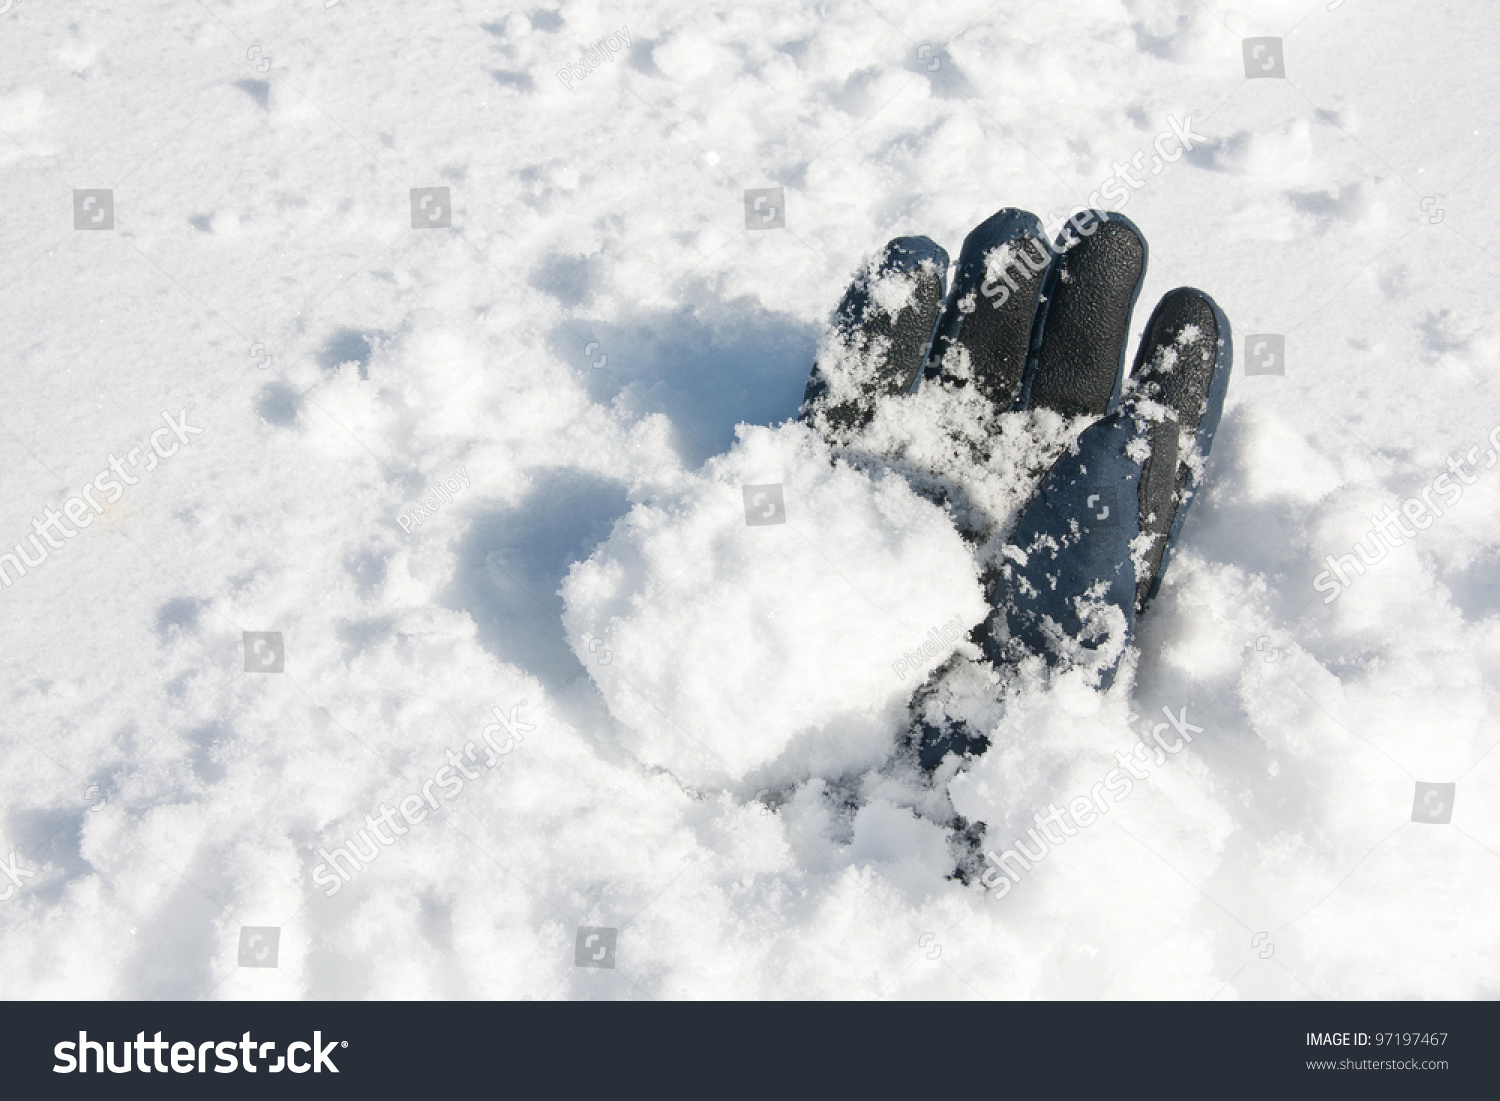 Glove Buried Snow After Avalanche Stock Photo 97197467